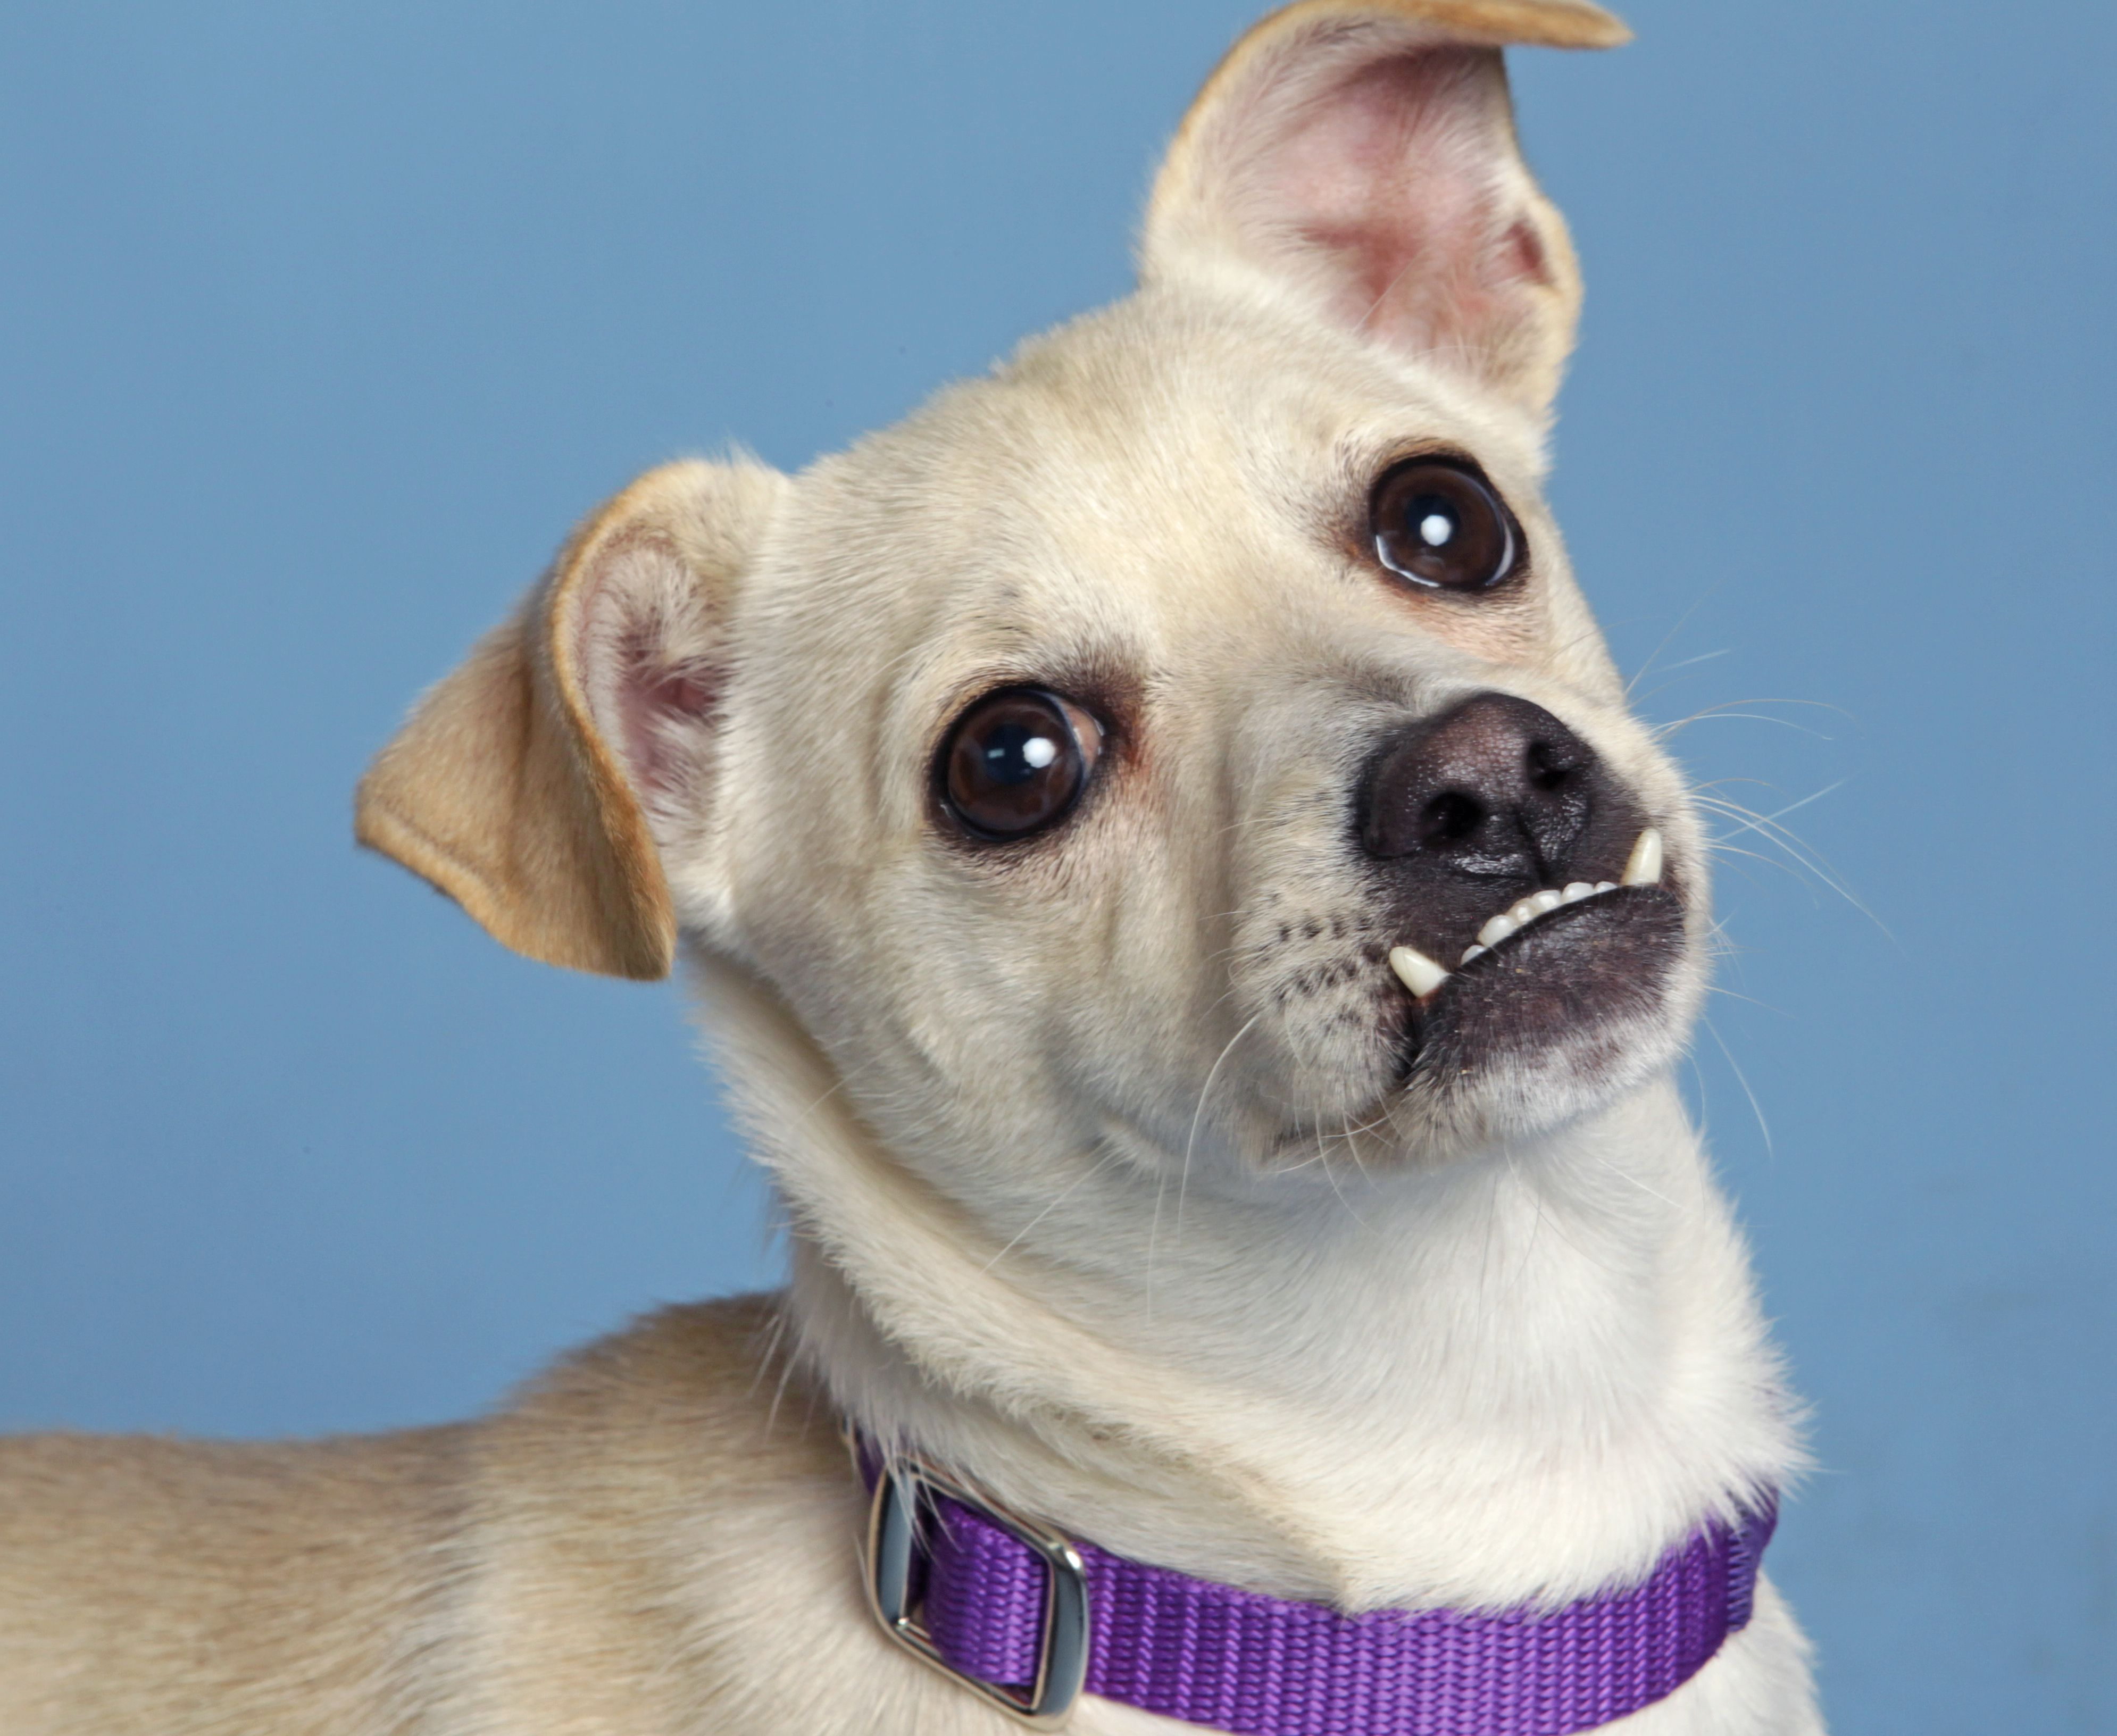 Greetings I M Herbie A Charming 10 Month Old Chihuahua Pug Mix Looking For My Special Family To Love I M A Spunky Guy Who Chihuahua Pug Mix Dogs Chihuahua